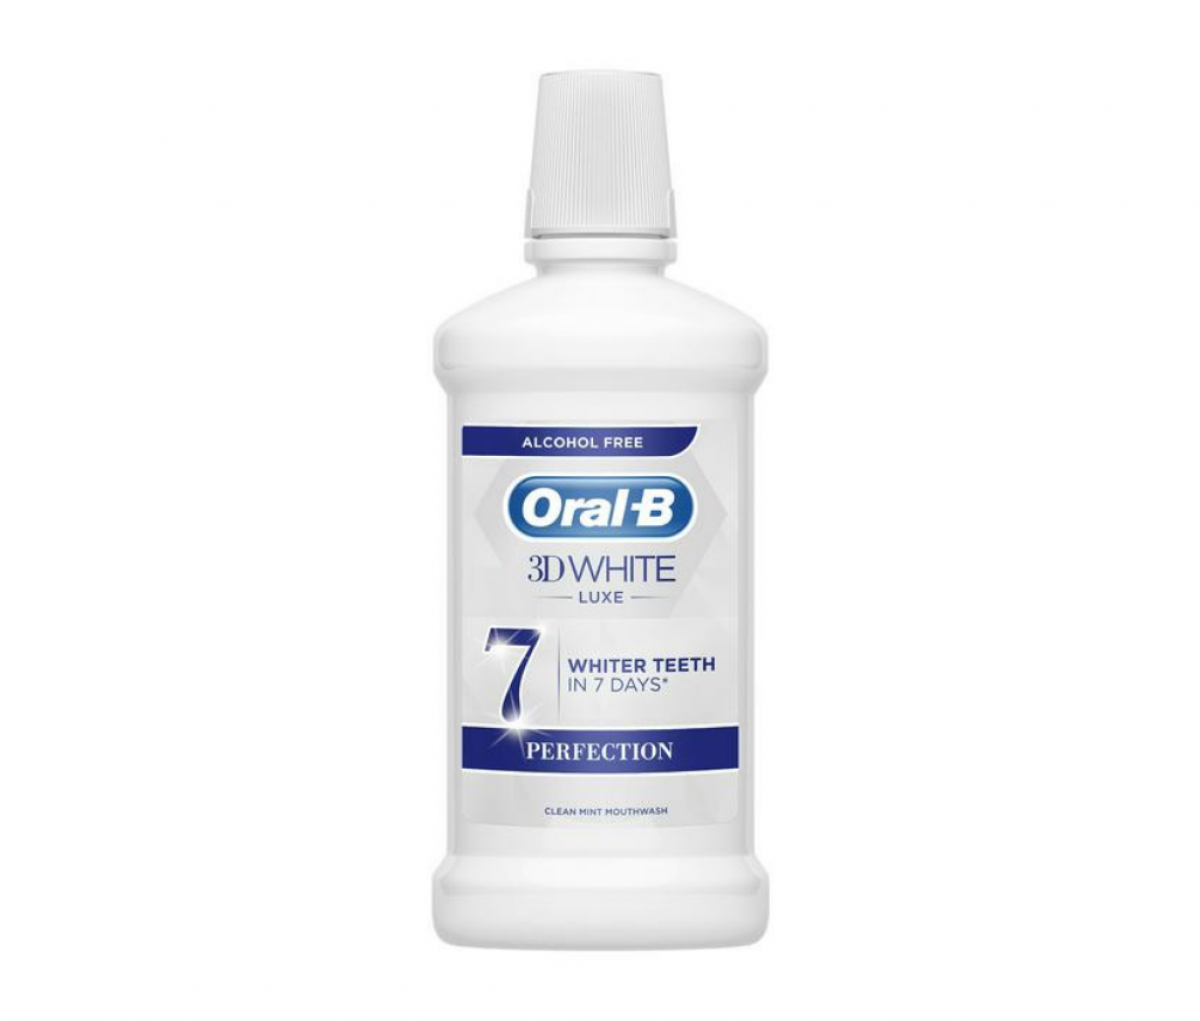 Oral B 500ml 3D White Luxe Perfection Shine Clean